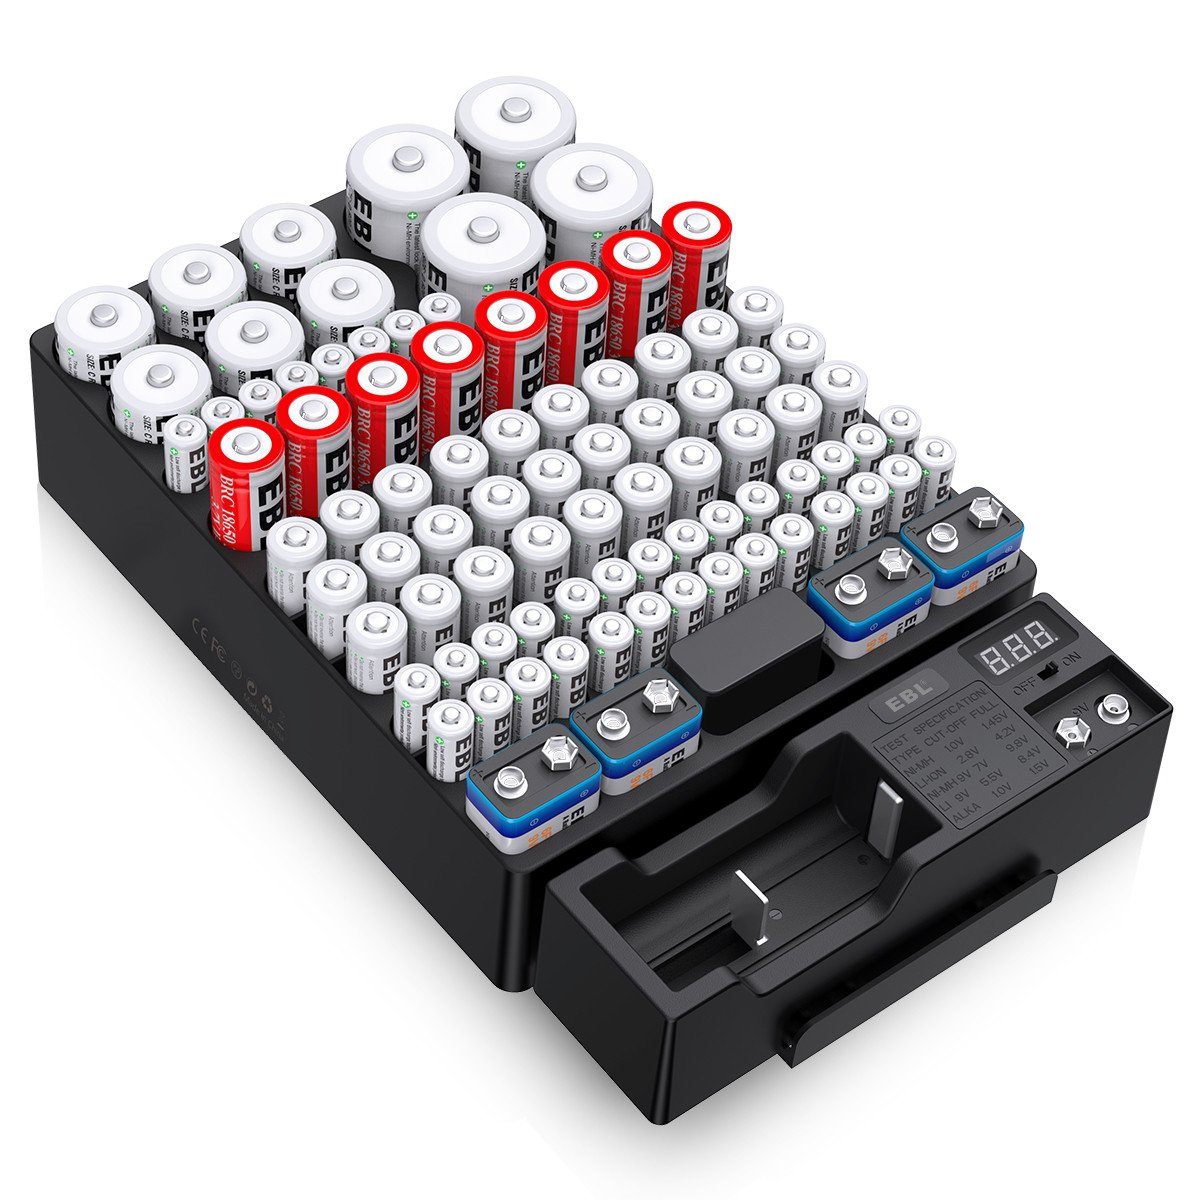 EBL Battery Organizer Storage Case, Includes Removabl Accurate Digital LED Screen Battery Tester with Holds 88 Batteries Various Sizes